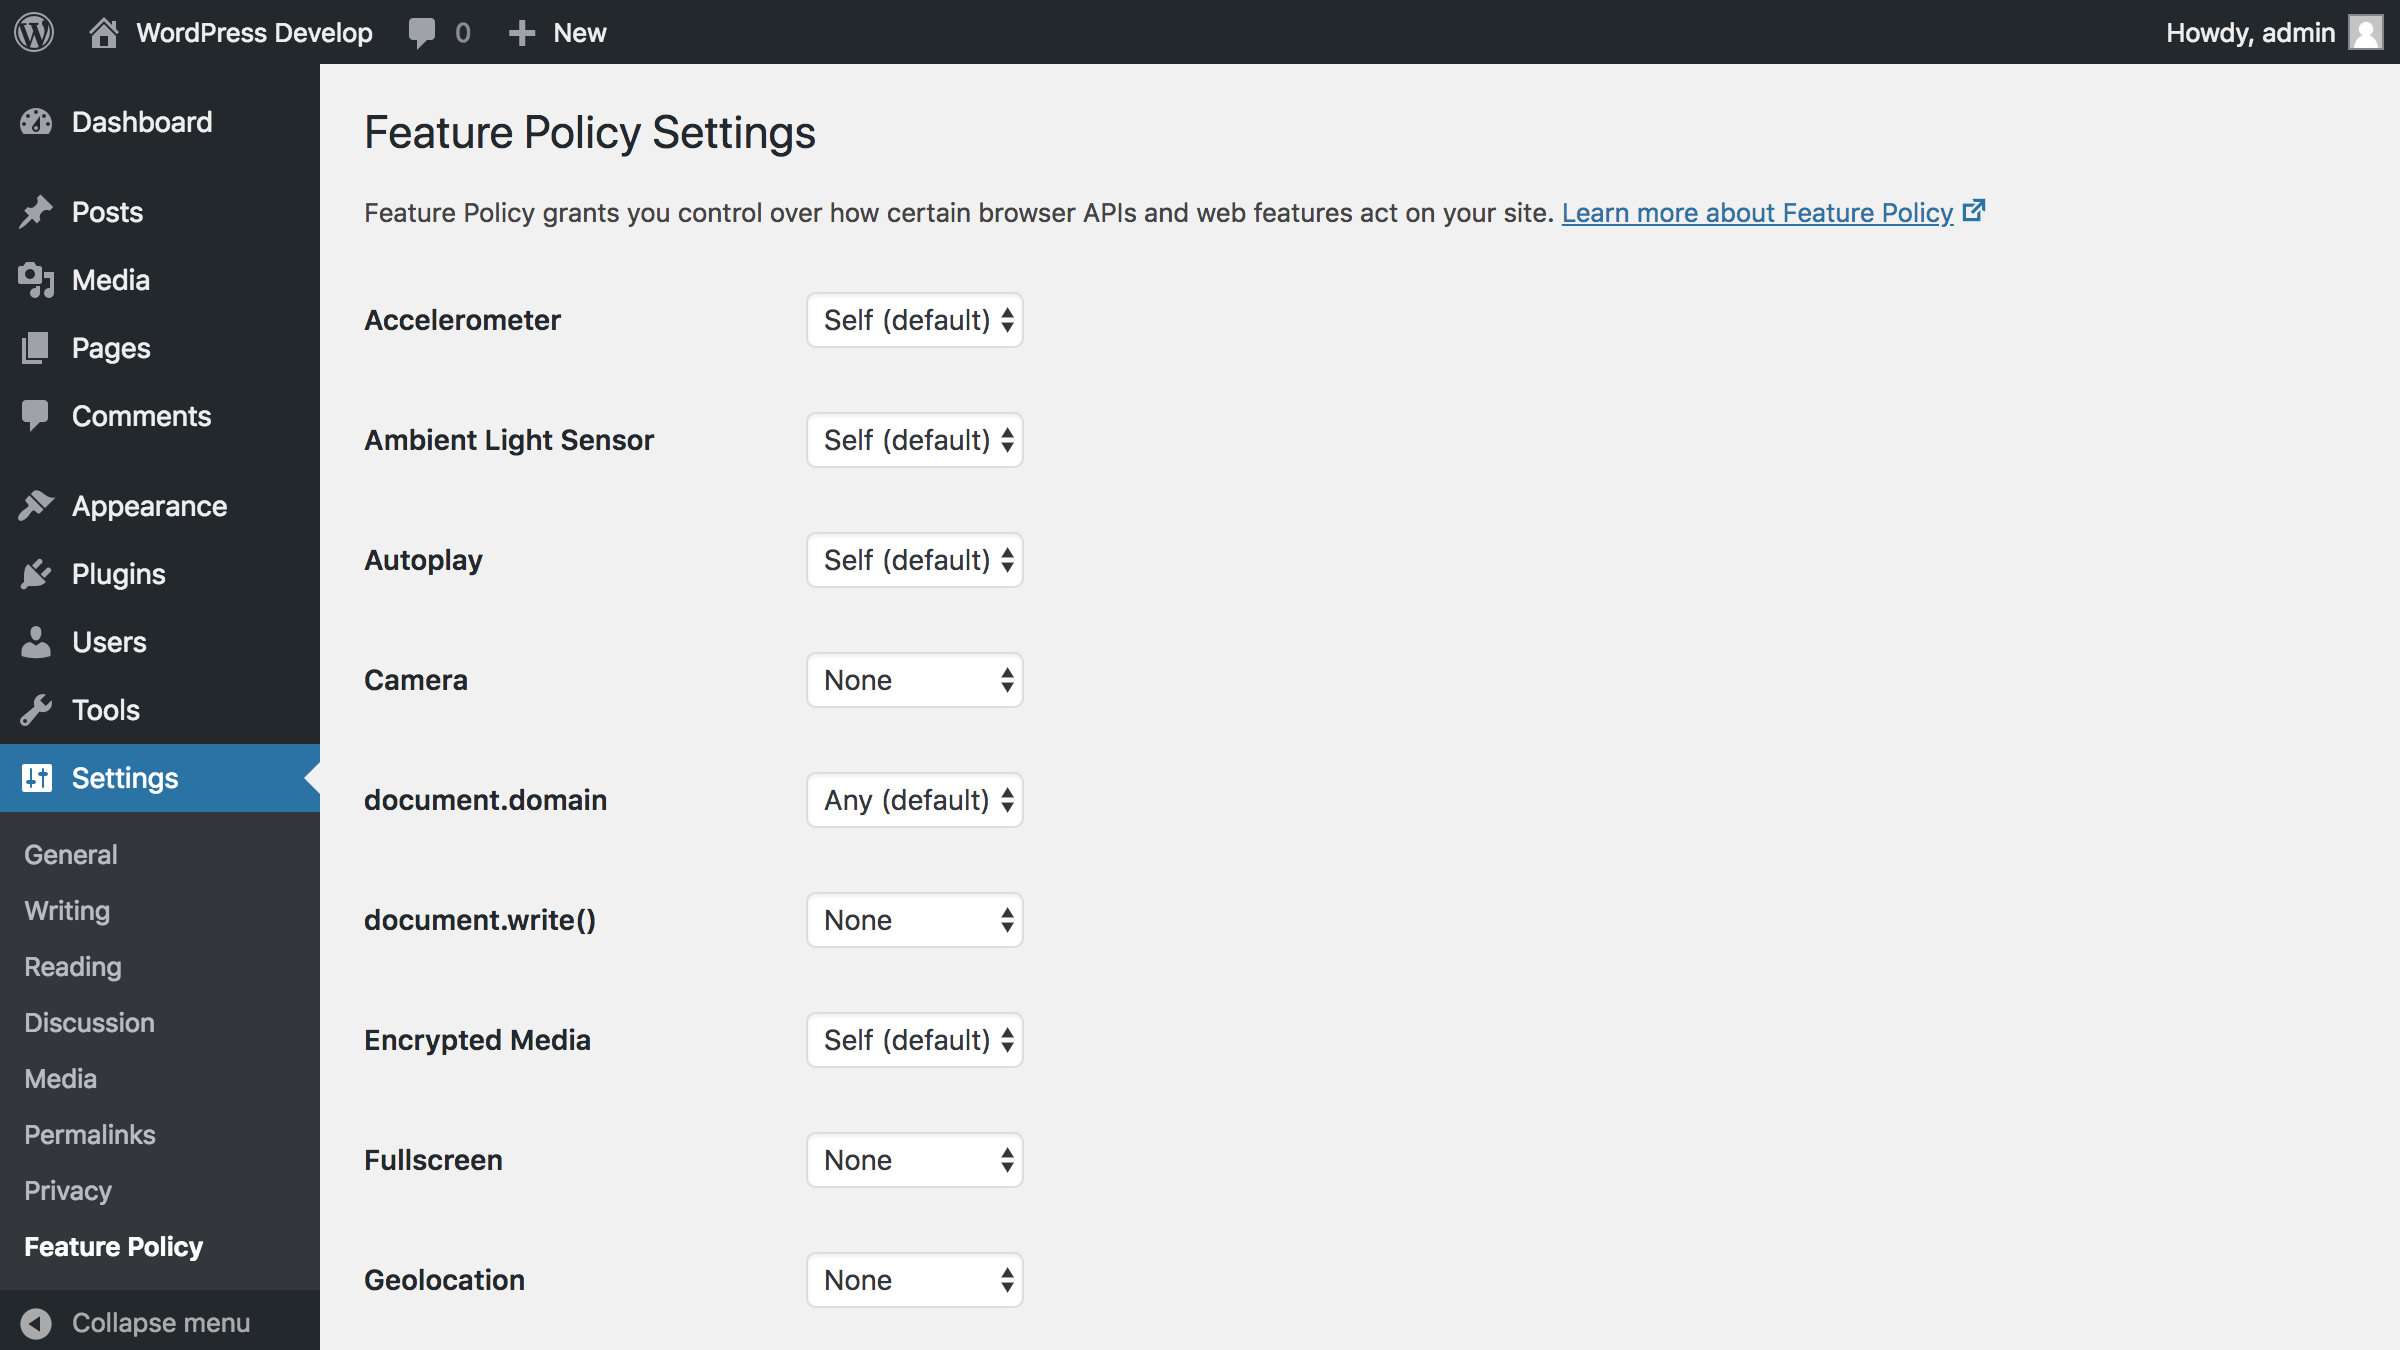 Settings screen to control policies for all available features